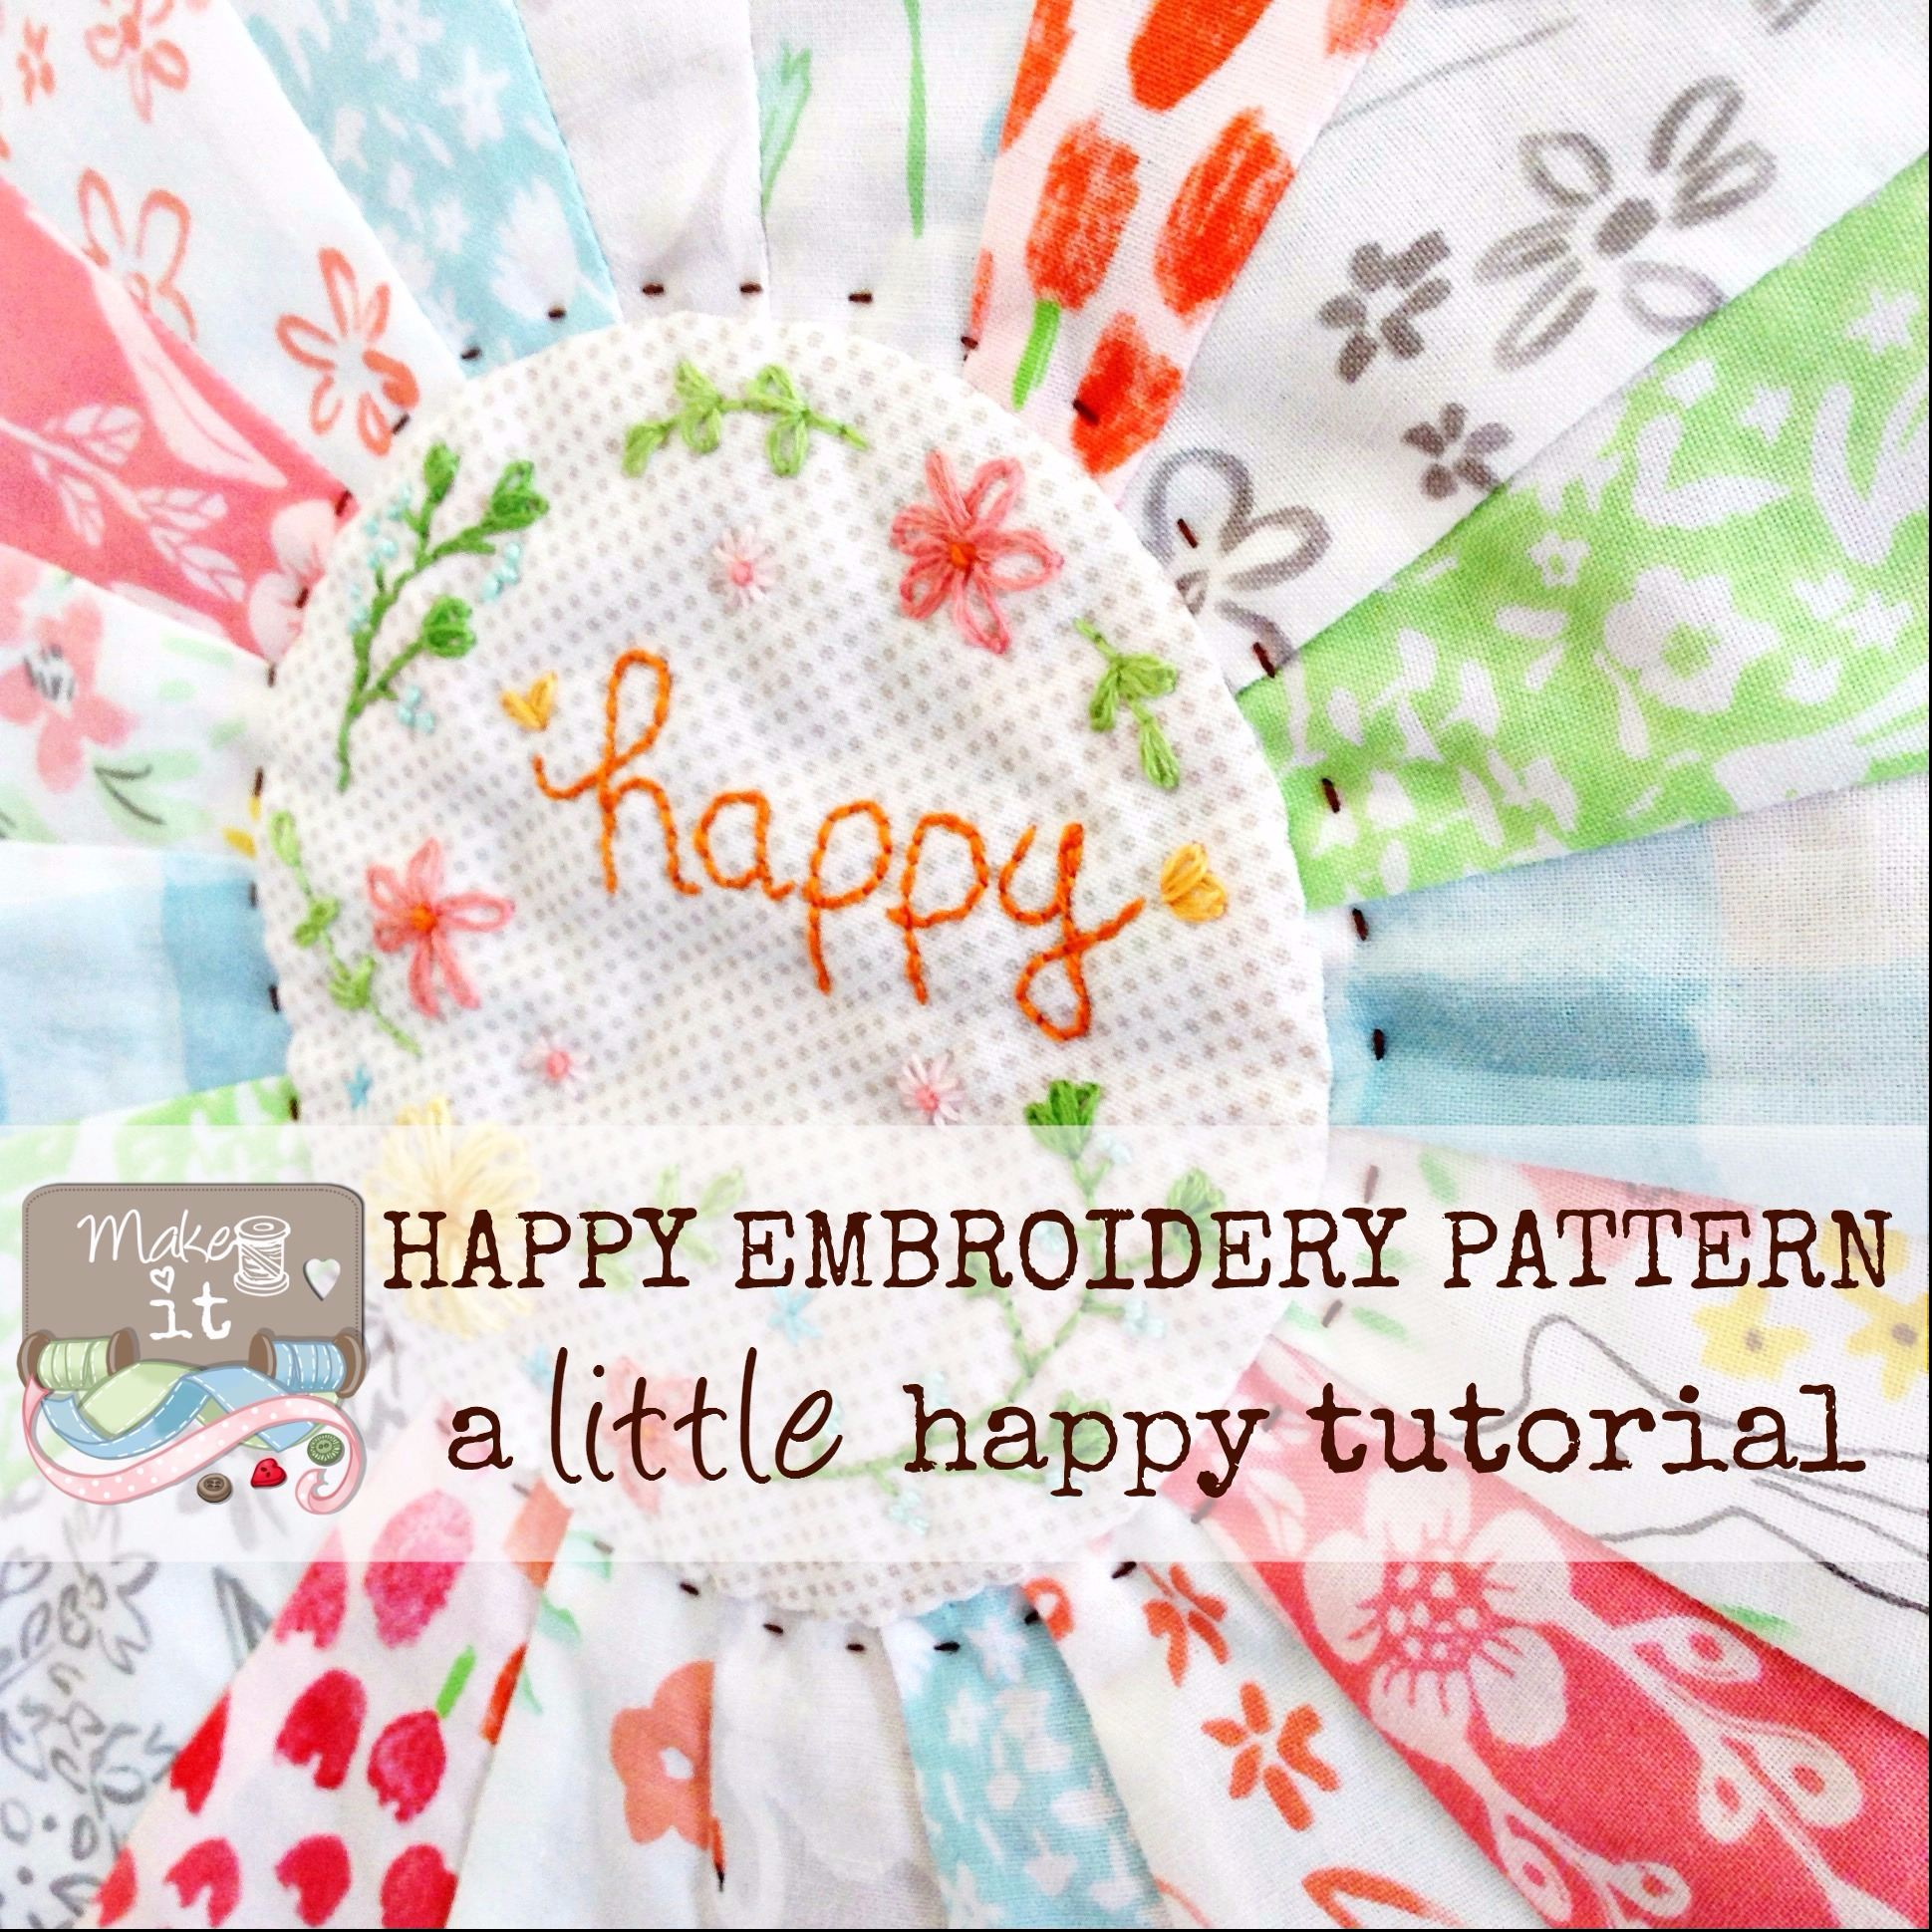 Make it Happy Embroidery Pattern